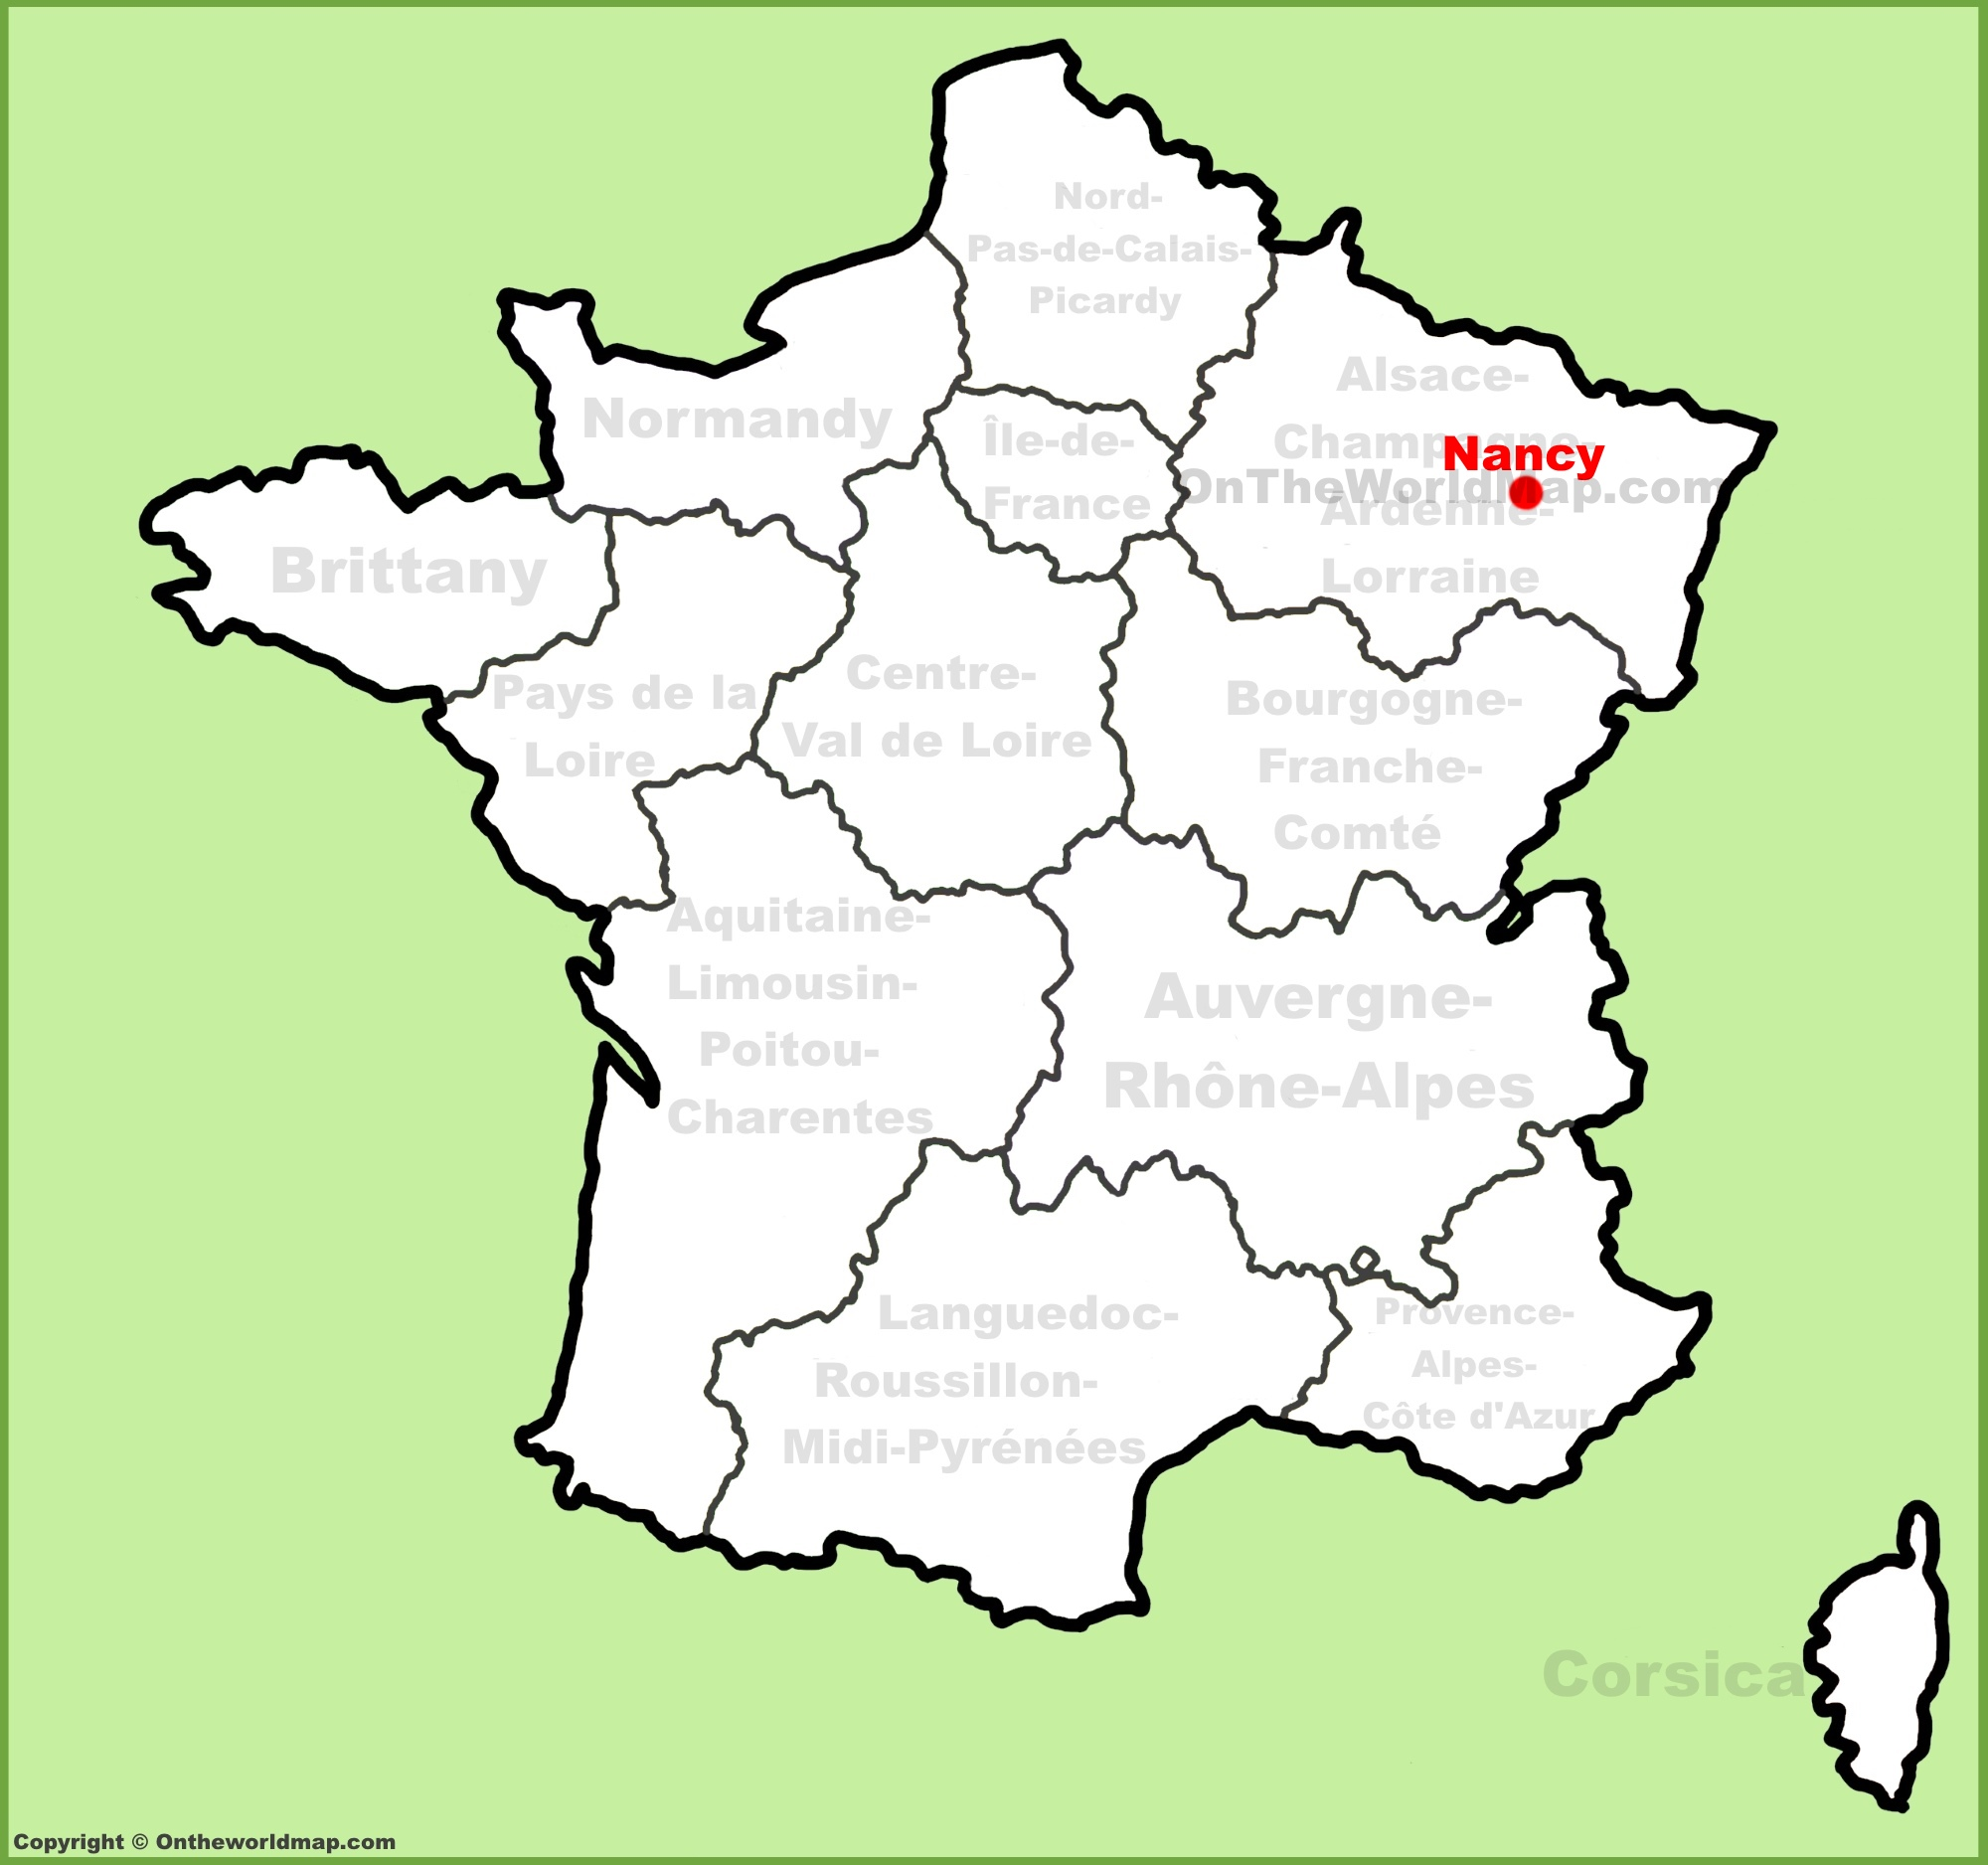 Nancy location on the France map